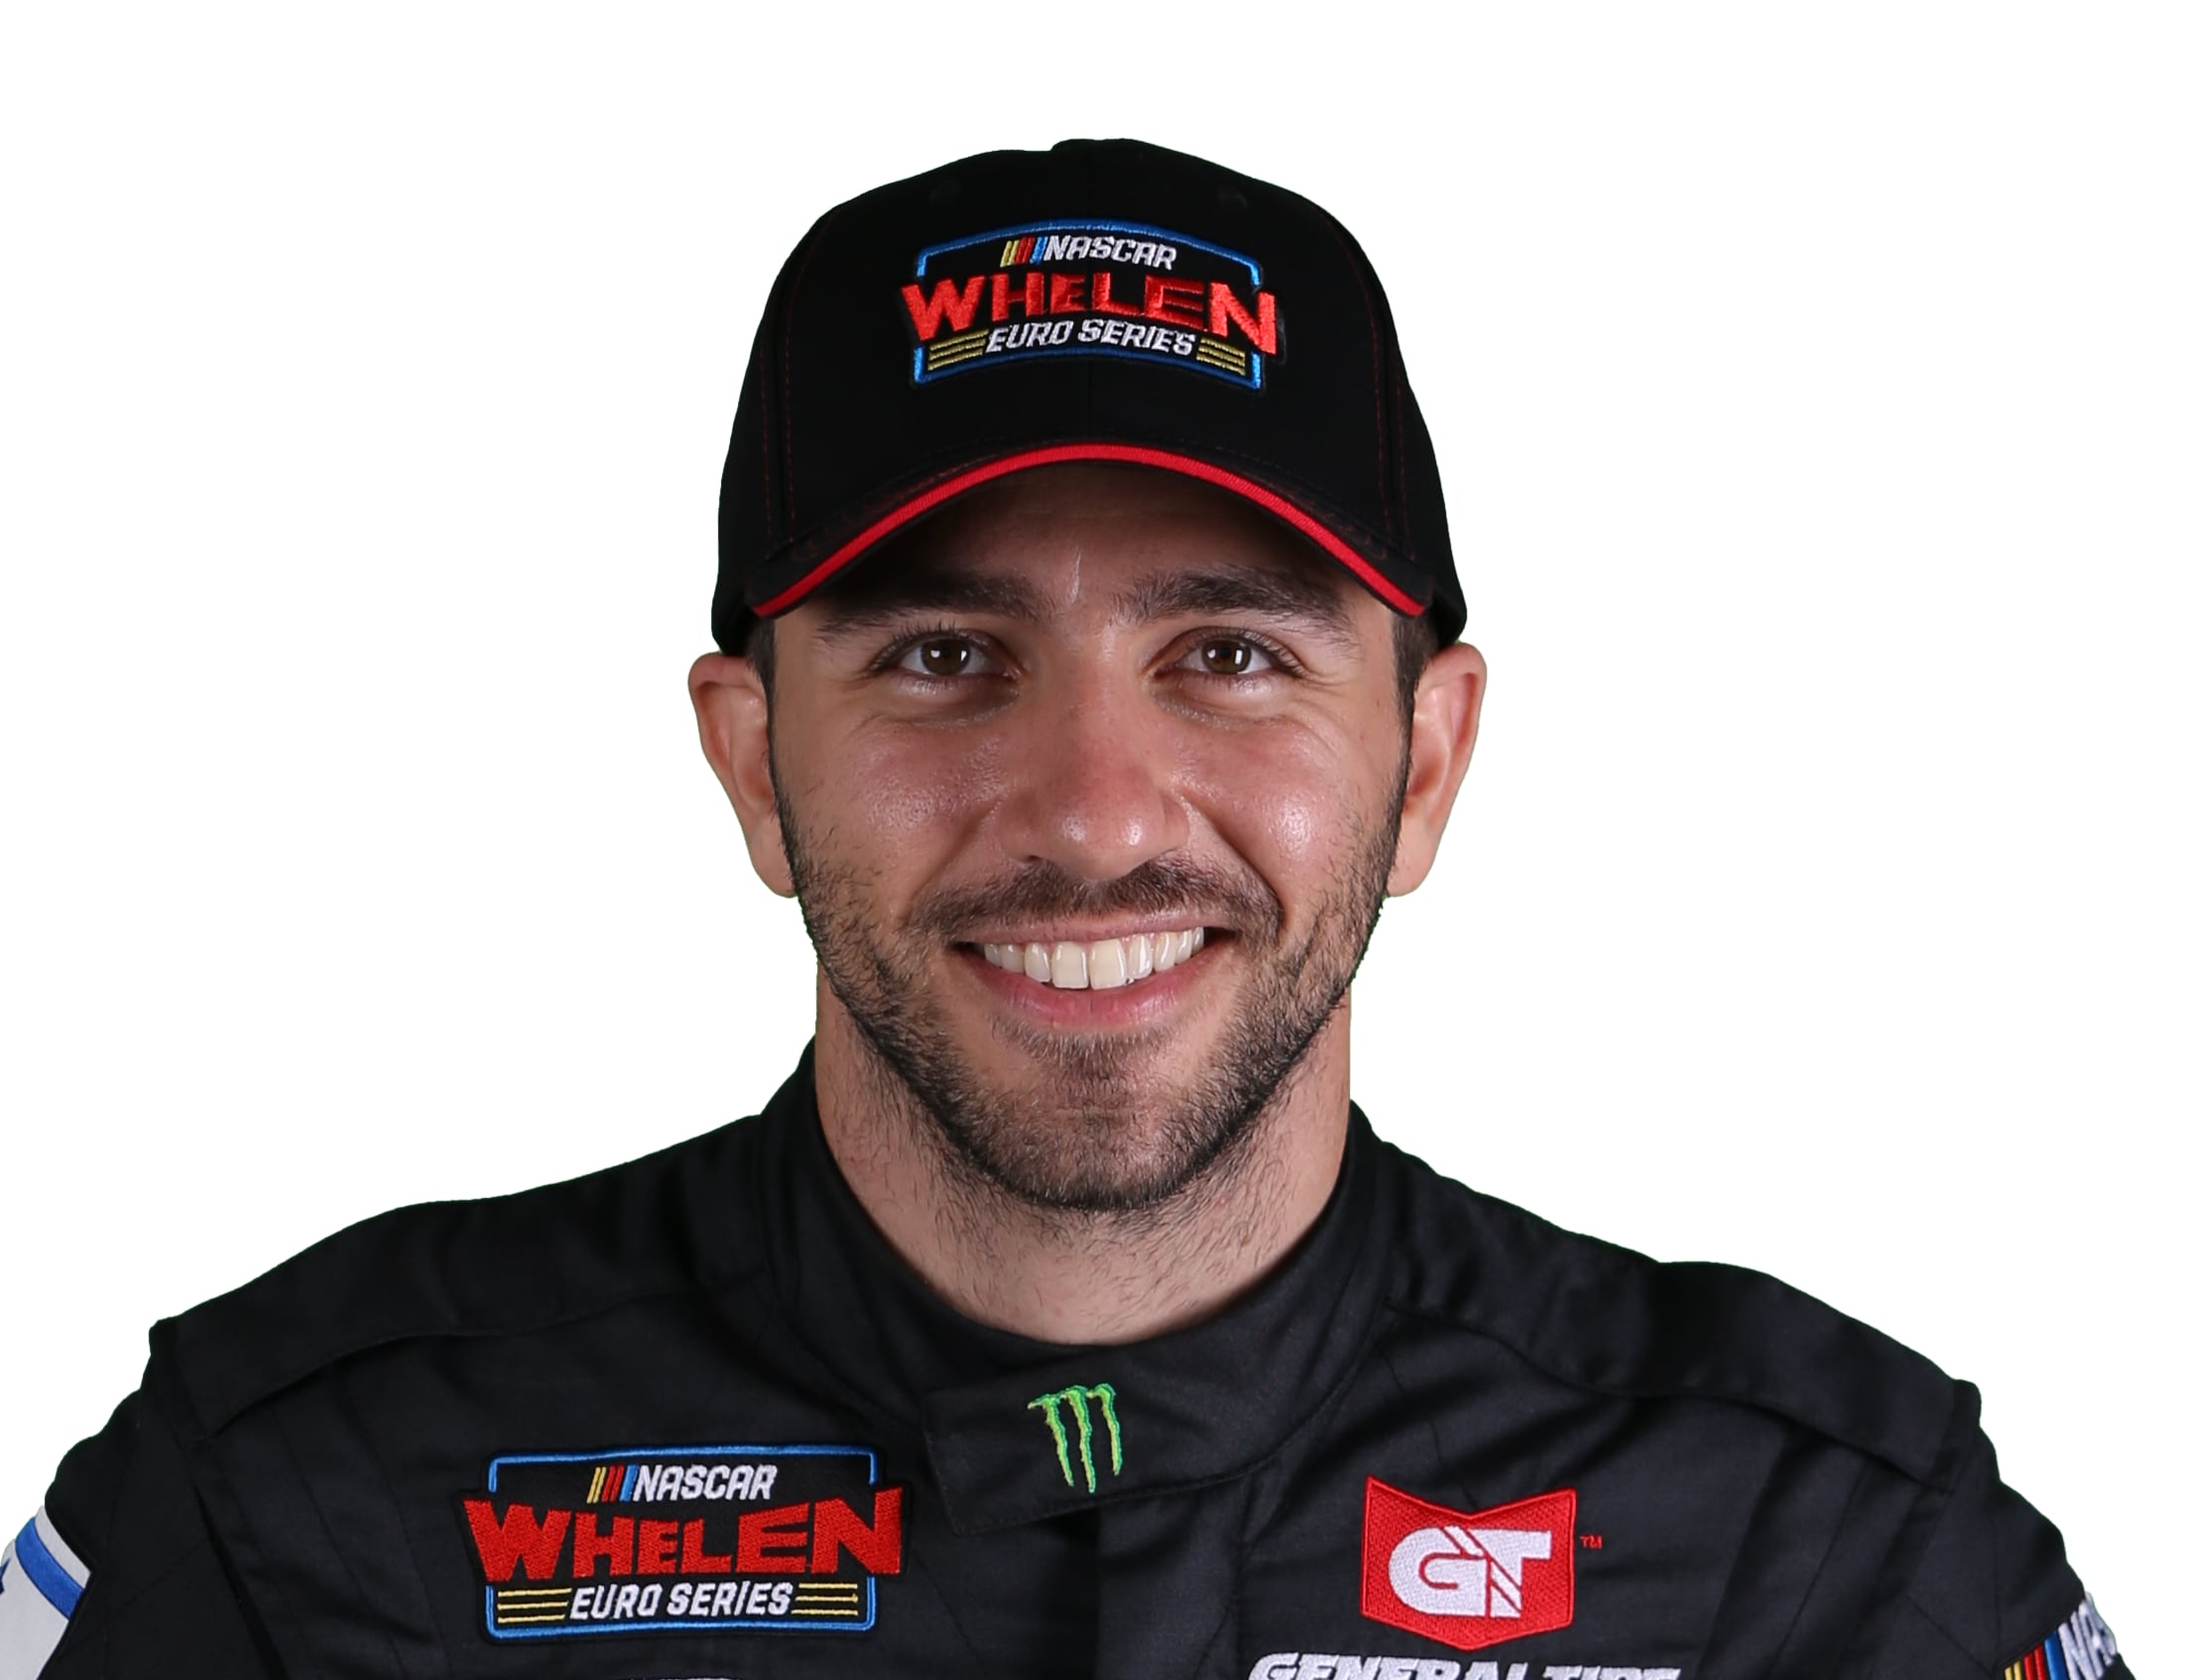 Headshot image of Alon Day